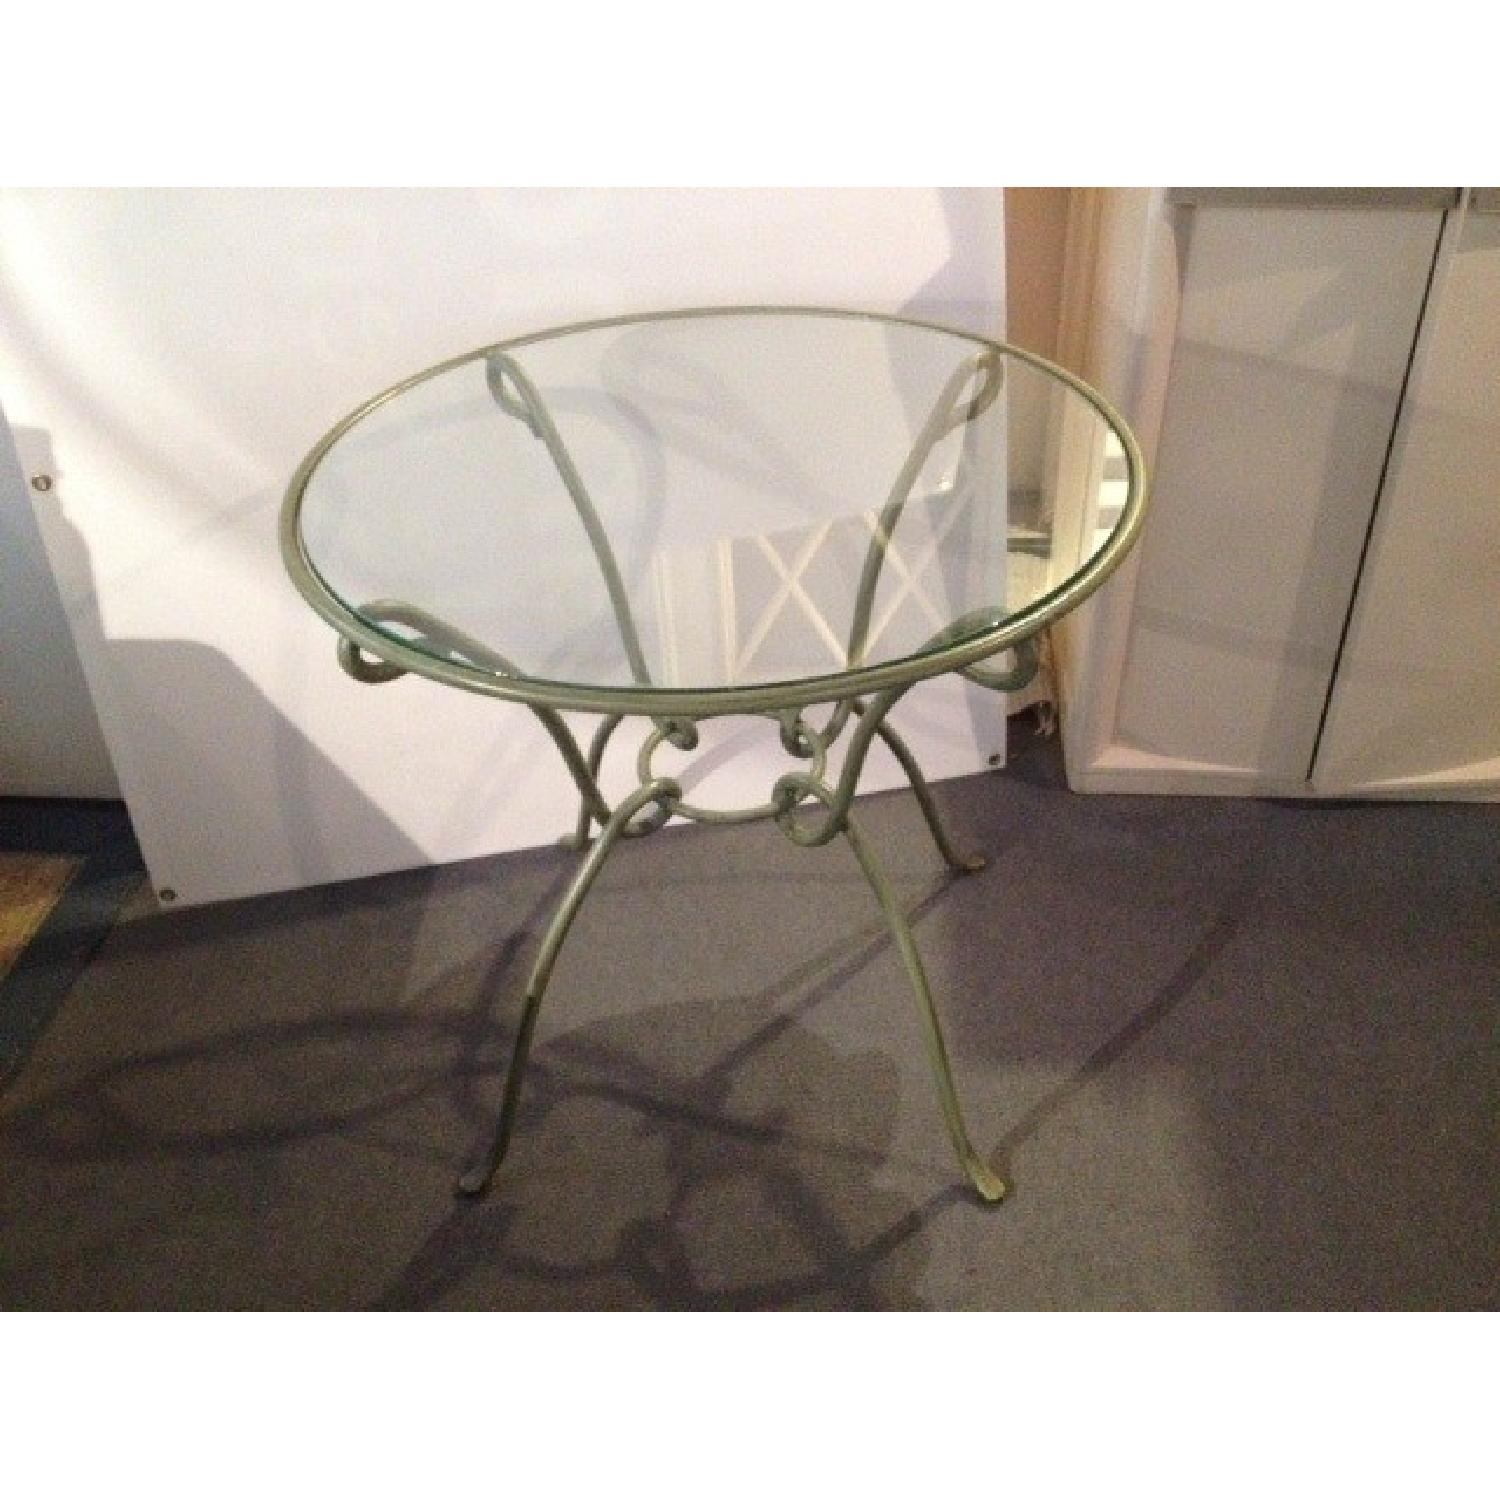 Pier 1 Round Kitchen Table w/ Metal Frame & Glass Top - image-1